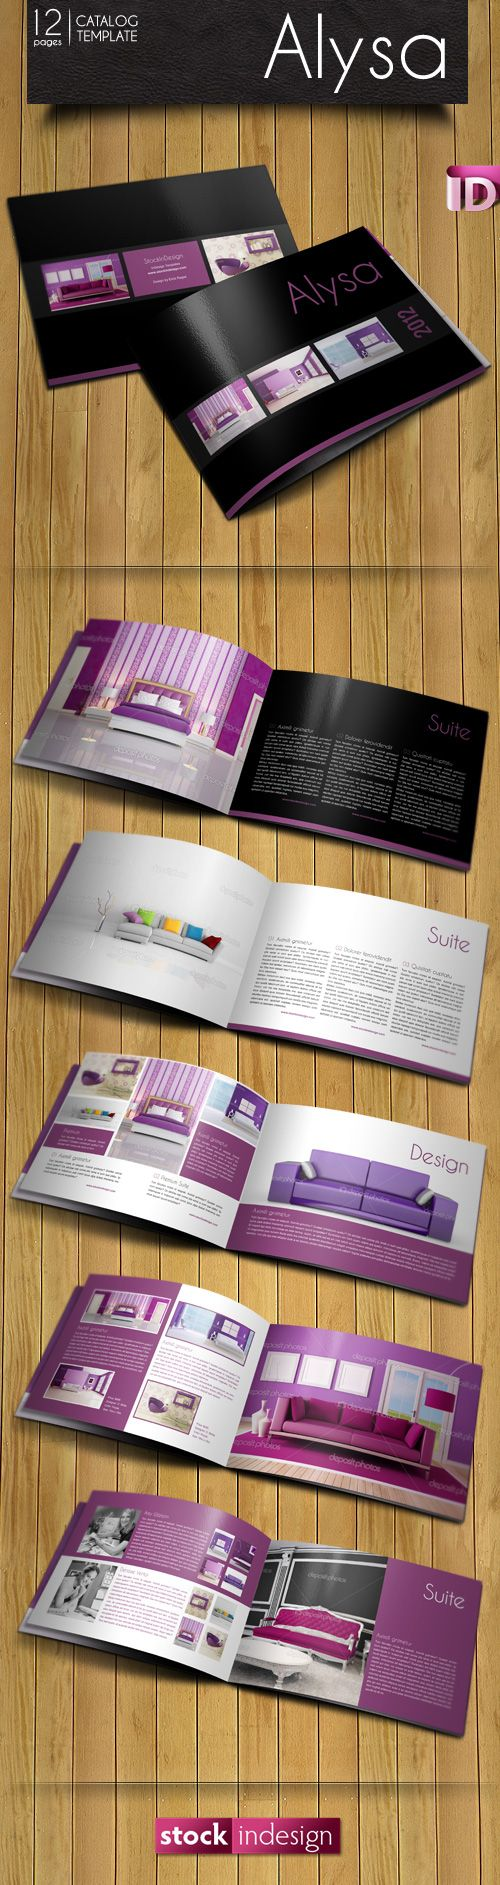 FREE InDesign Catalog Template: Alysa | Design inspirations ...